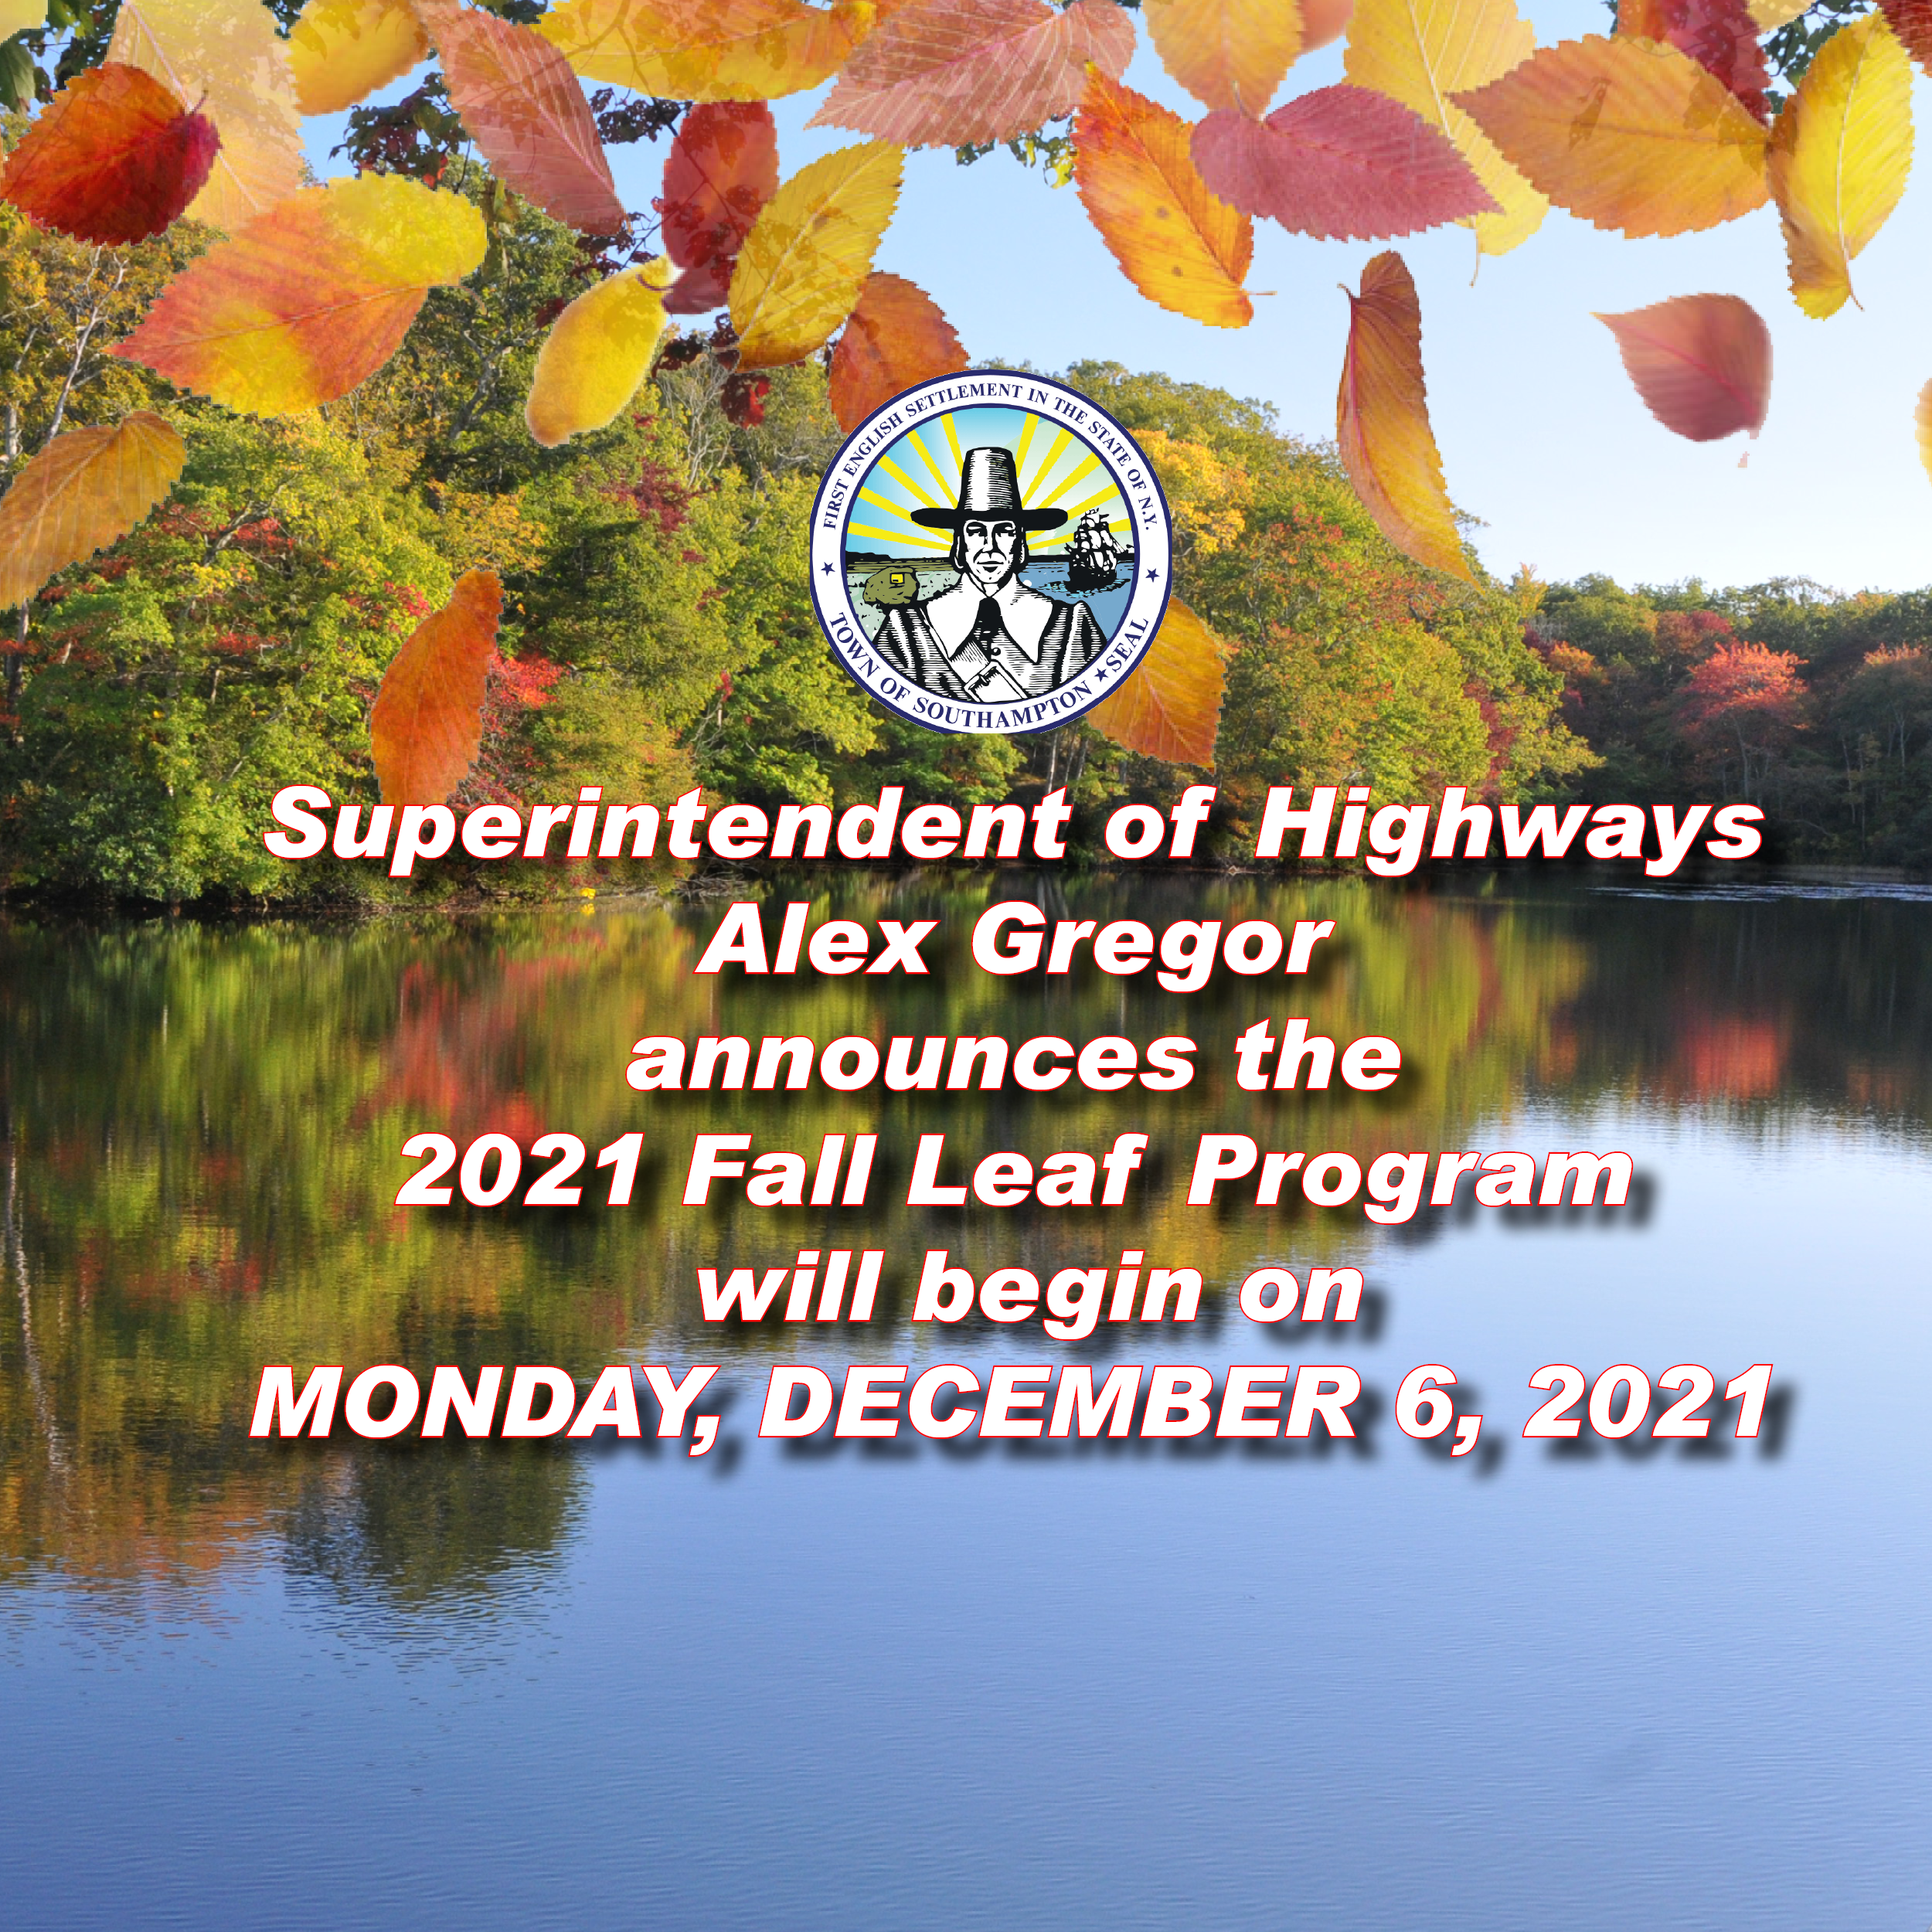 Fall Leaf Program will begin on Monday, December 7, 2020